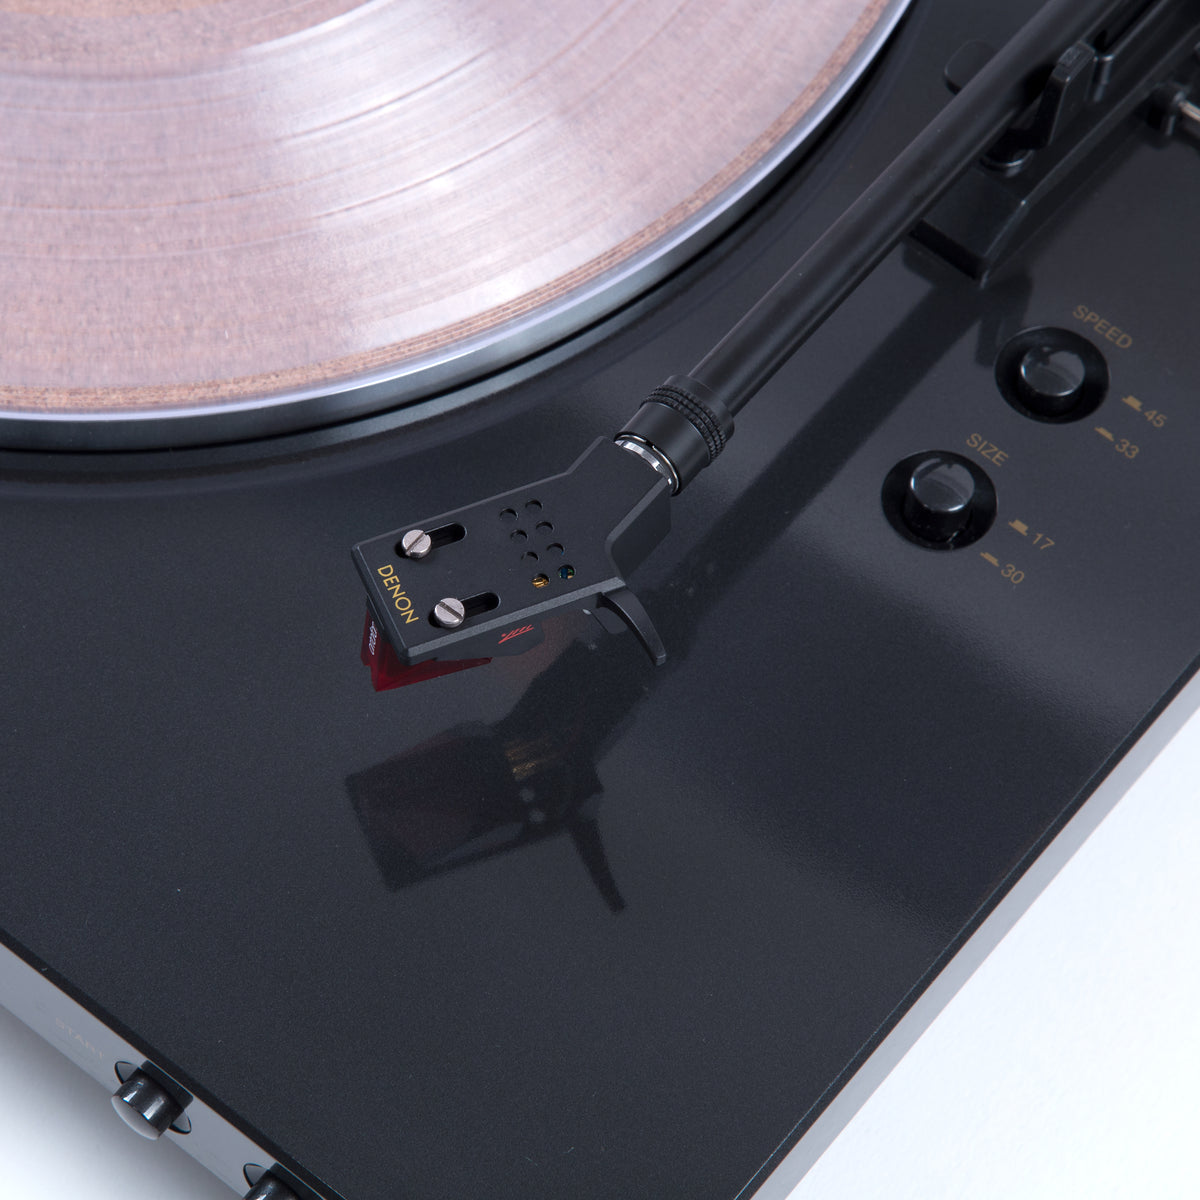 Denon: DP-300F Turntable + Ortofon 2M Red Upgrade (TTL Upgrade)